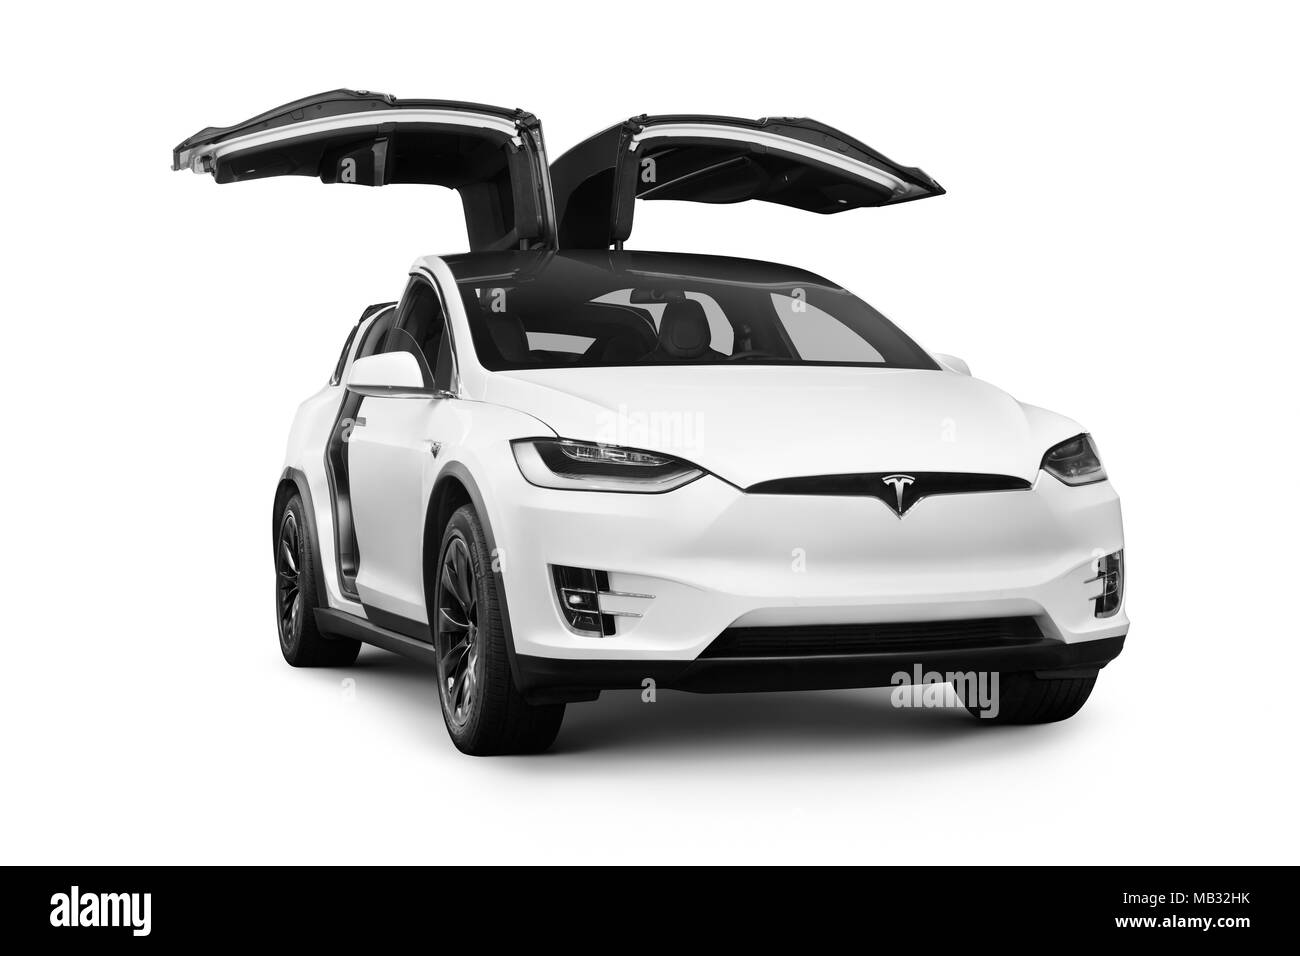 White Tesla Model X luxury SUV electric car with open falcon wing doors 2018 isolated on white background  sc 1 st  Alamy & White Tesla Model X luxury SUV electric car with open falcon wing ...